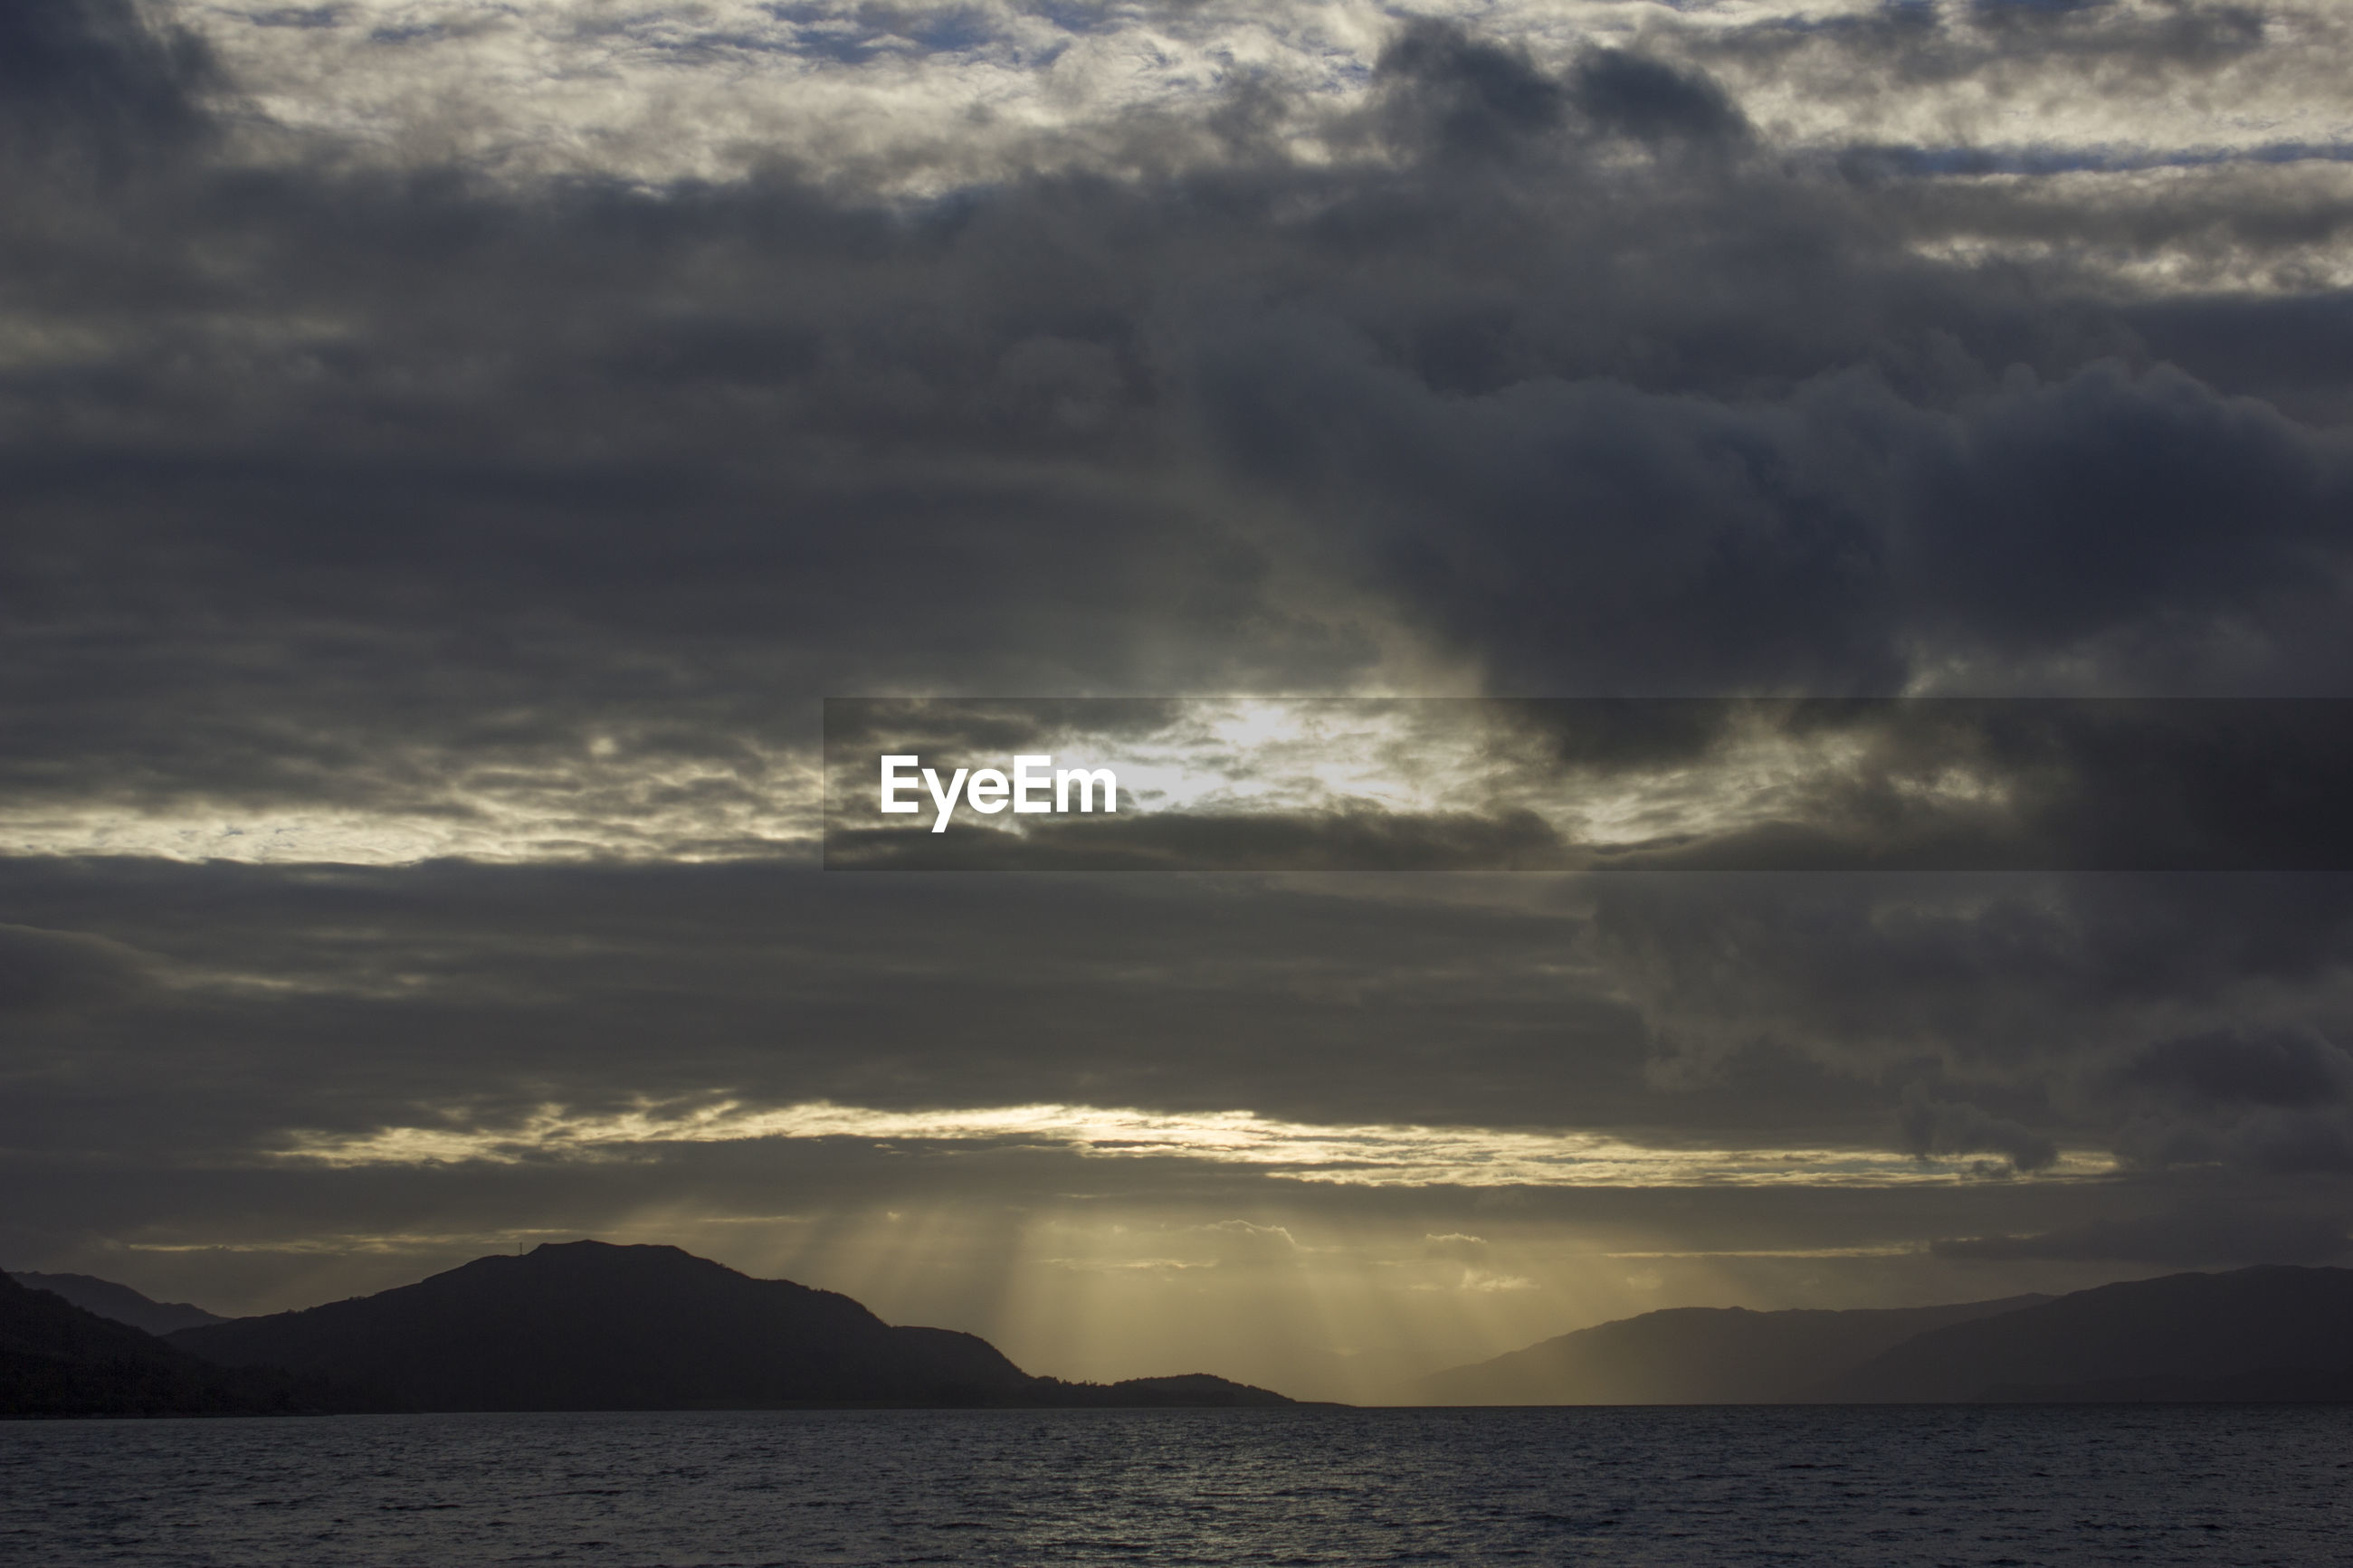 SCENIC VIEW OF DRAMATIC SKY